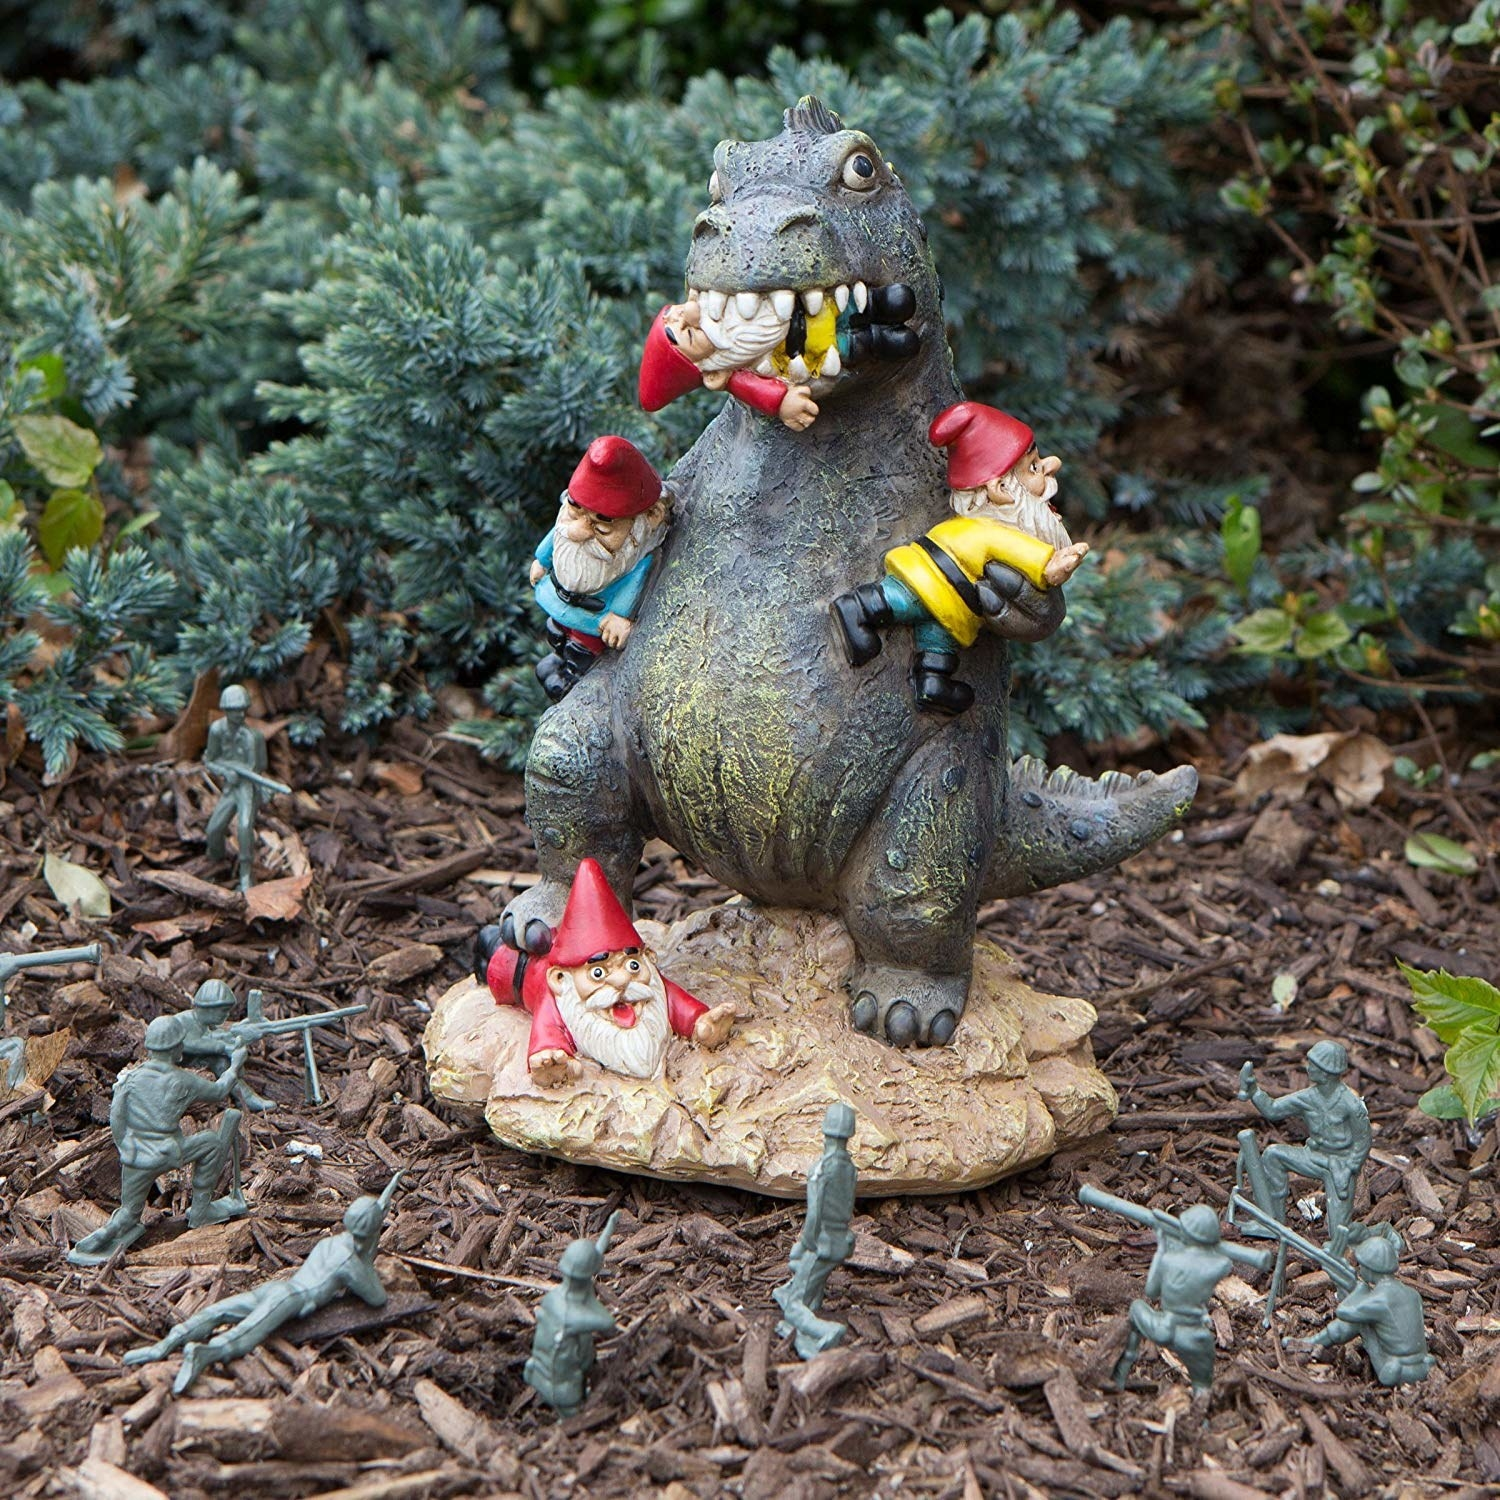 Godzilla lawn ornament attacking gnomes with toy army characters surrounding it in a garden